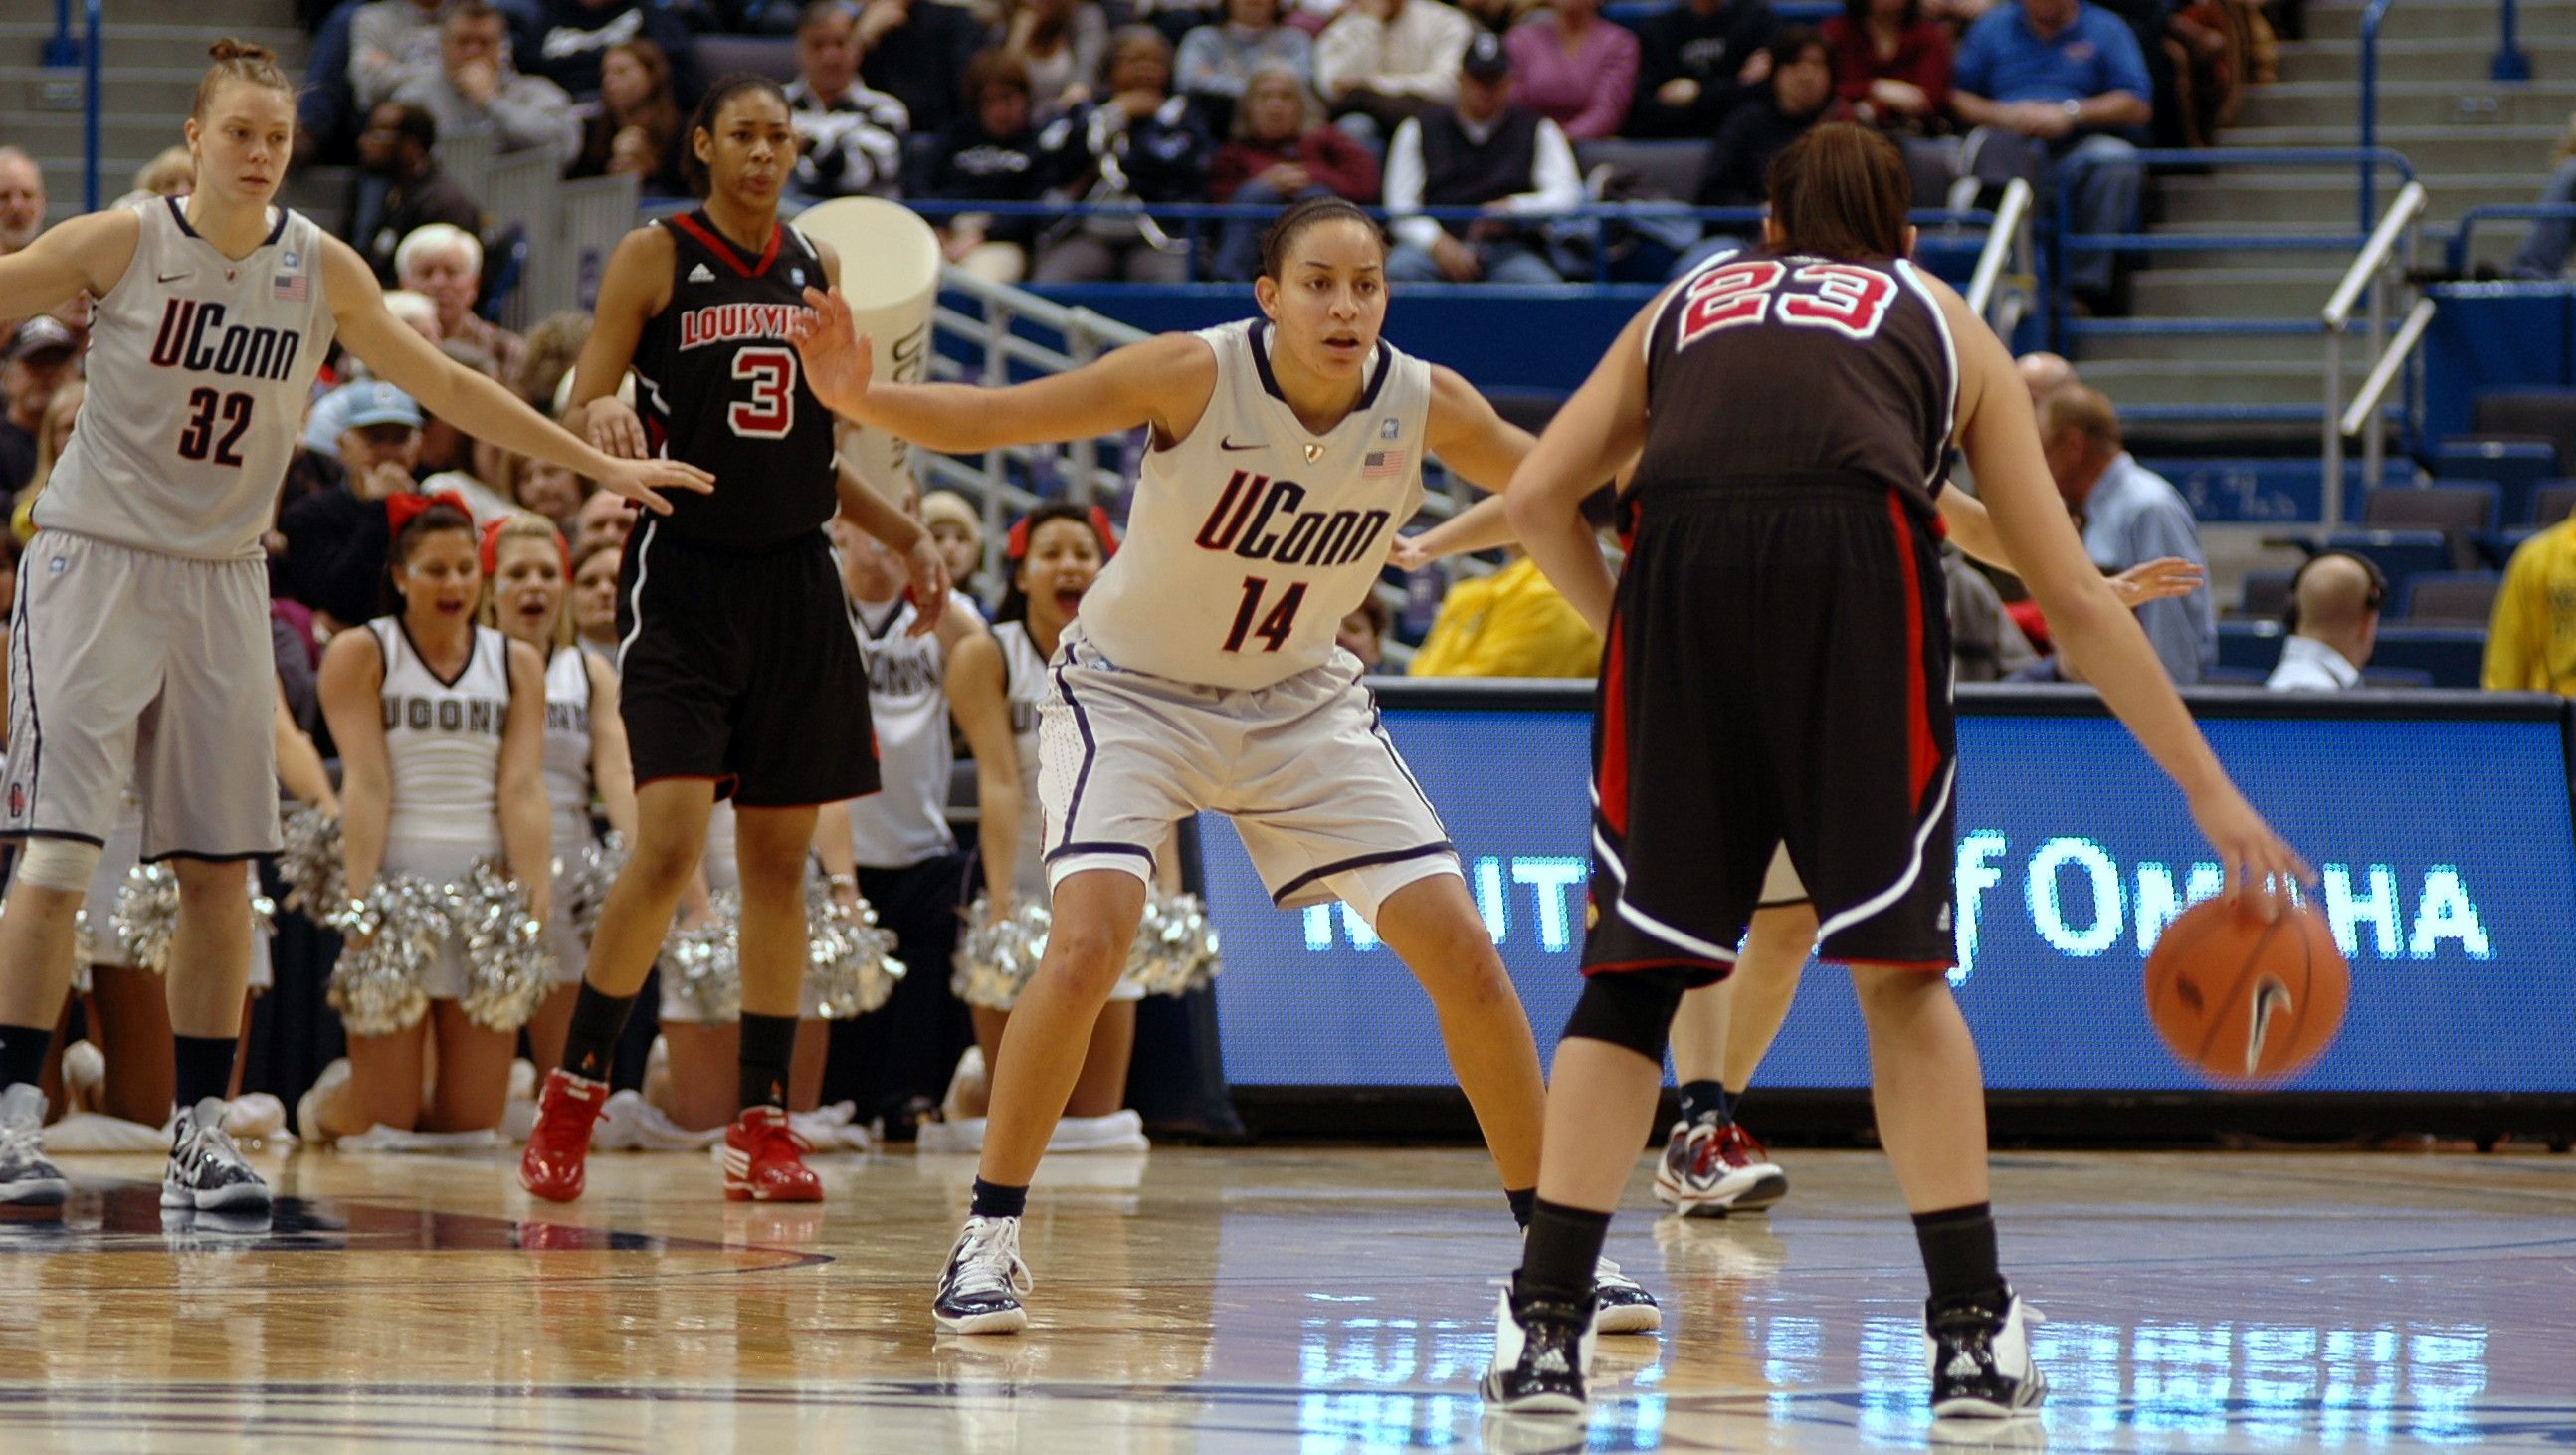 Defensive pressure too much for Stringer's Scarlet Knights as UConn rolls over Rutgers